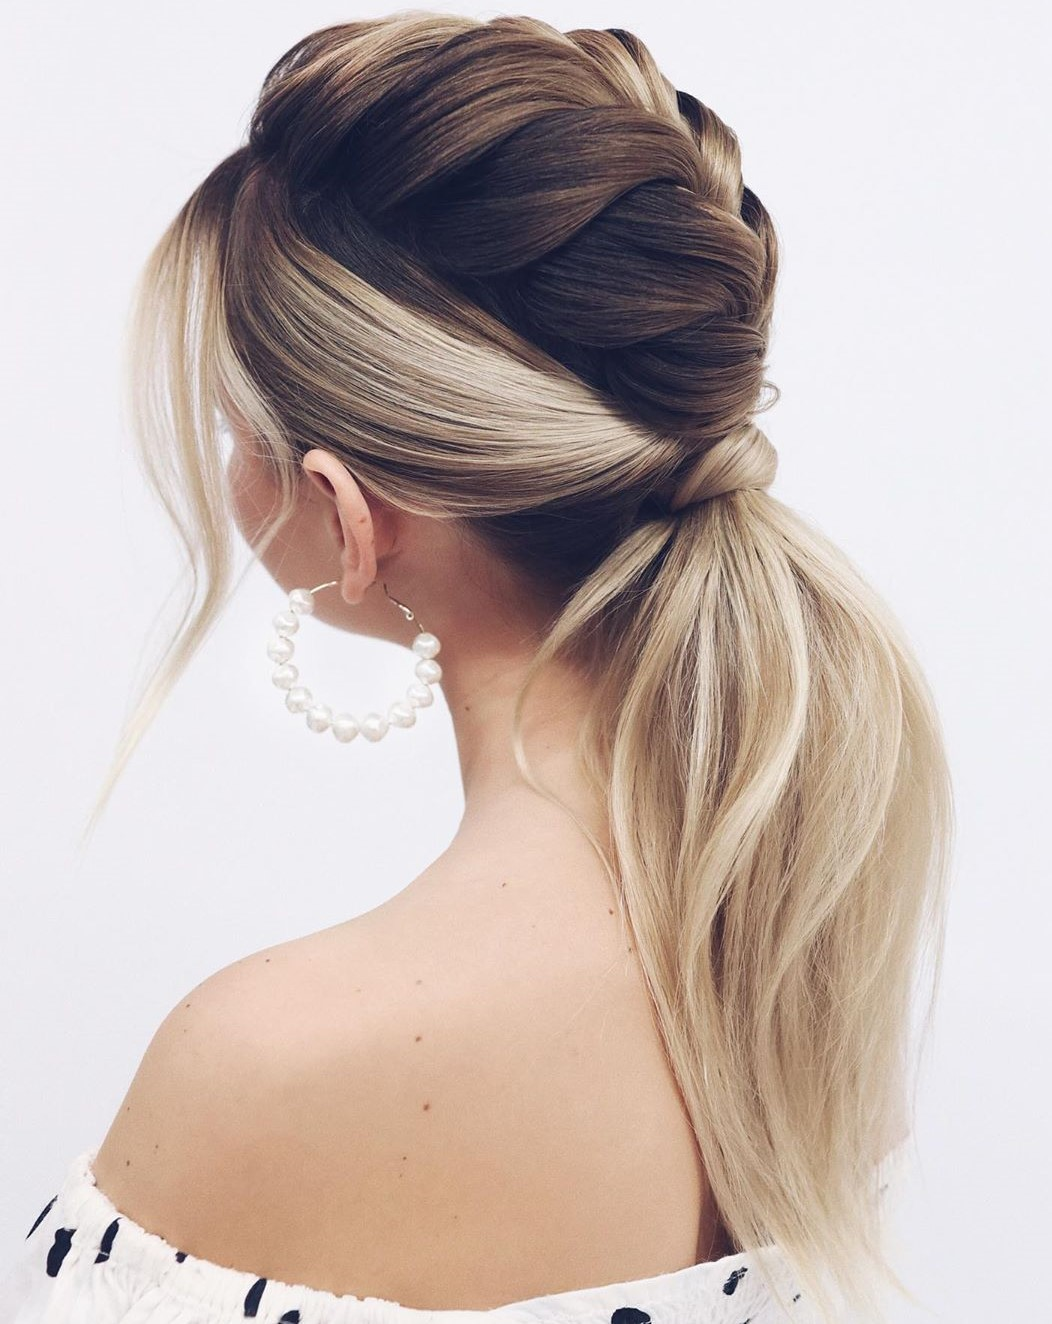 Braid and Ponytail Updo for Straight Hair